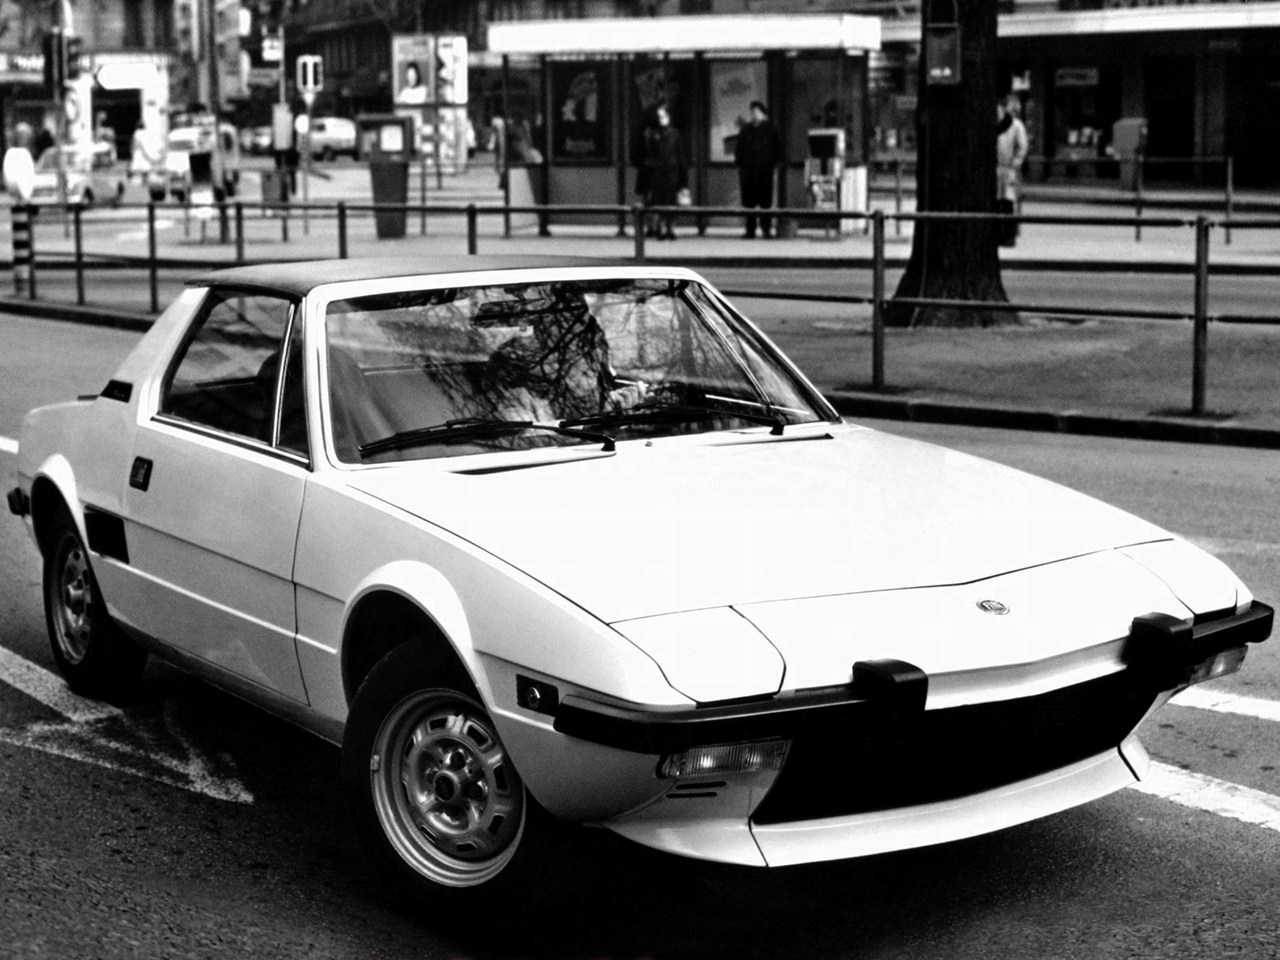 Fiat X 1/9 photos - PhotoGallery with 3 pics | CarsBase.com - Cars ...